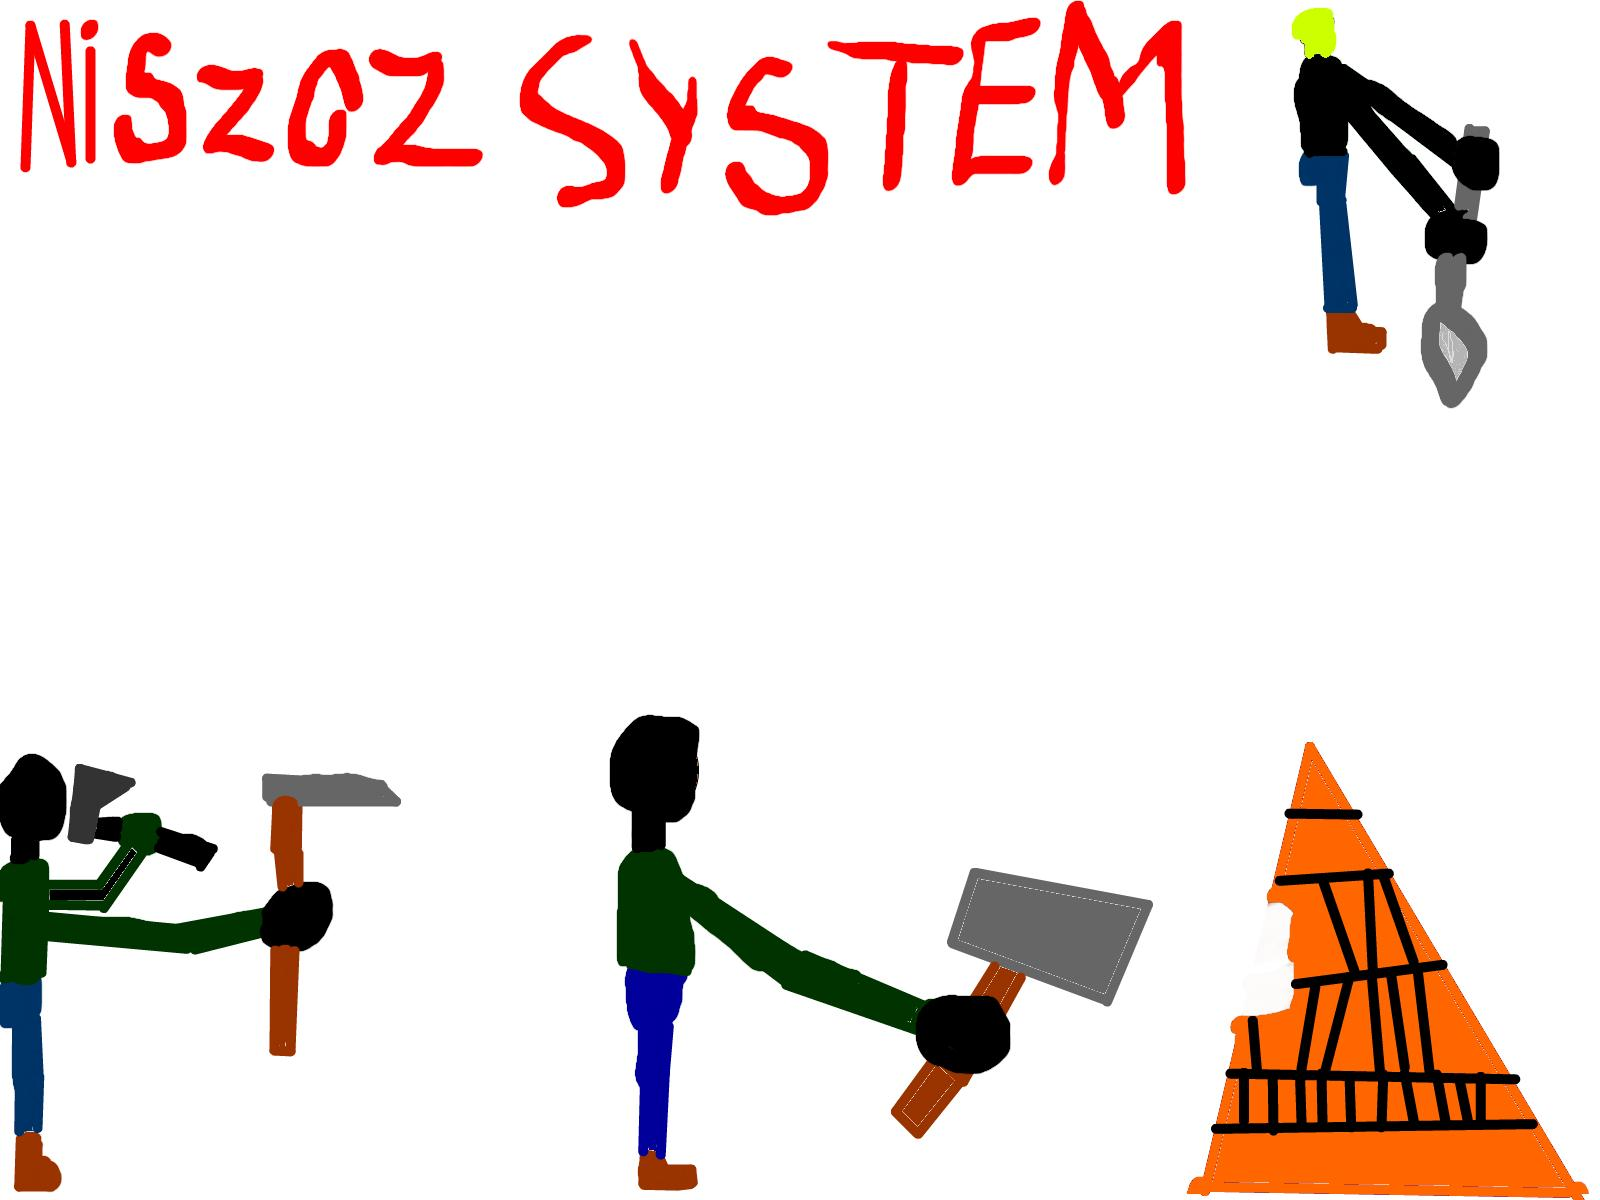 atack on a system